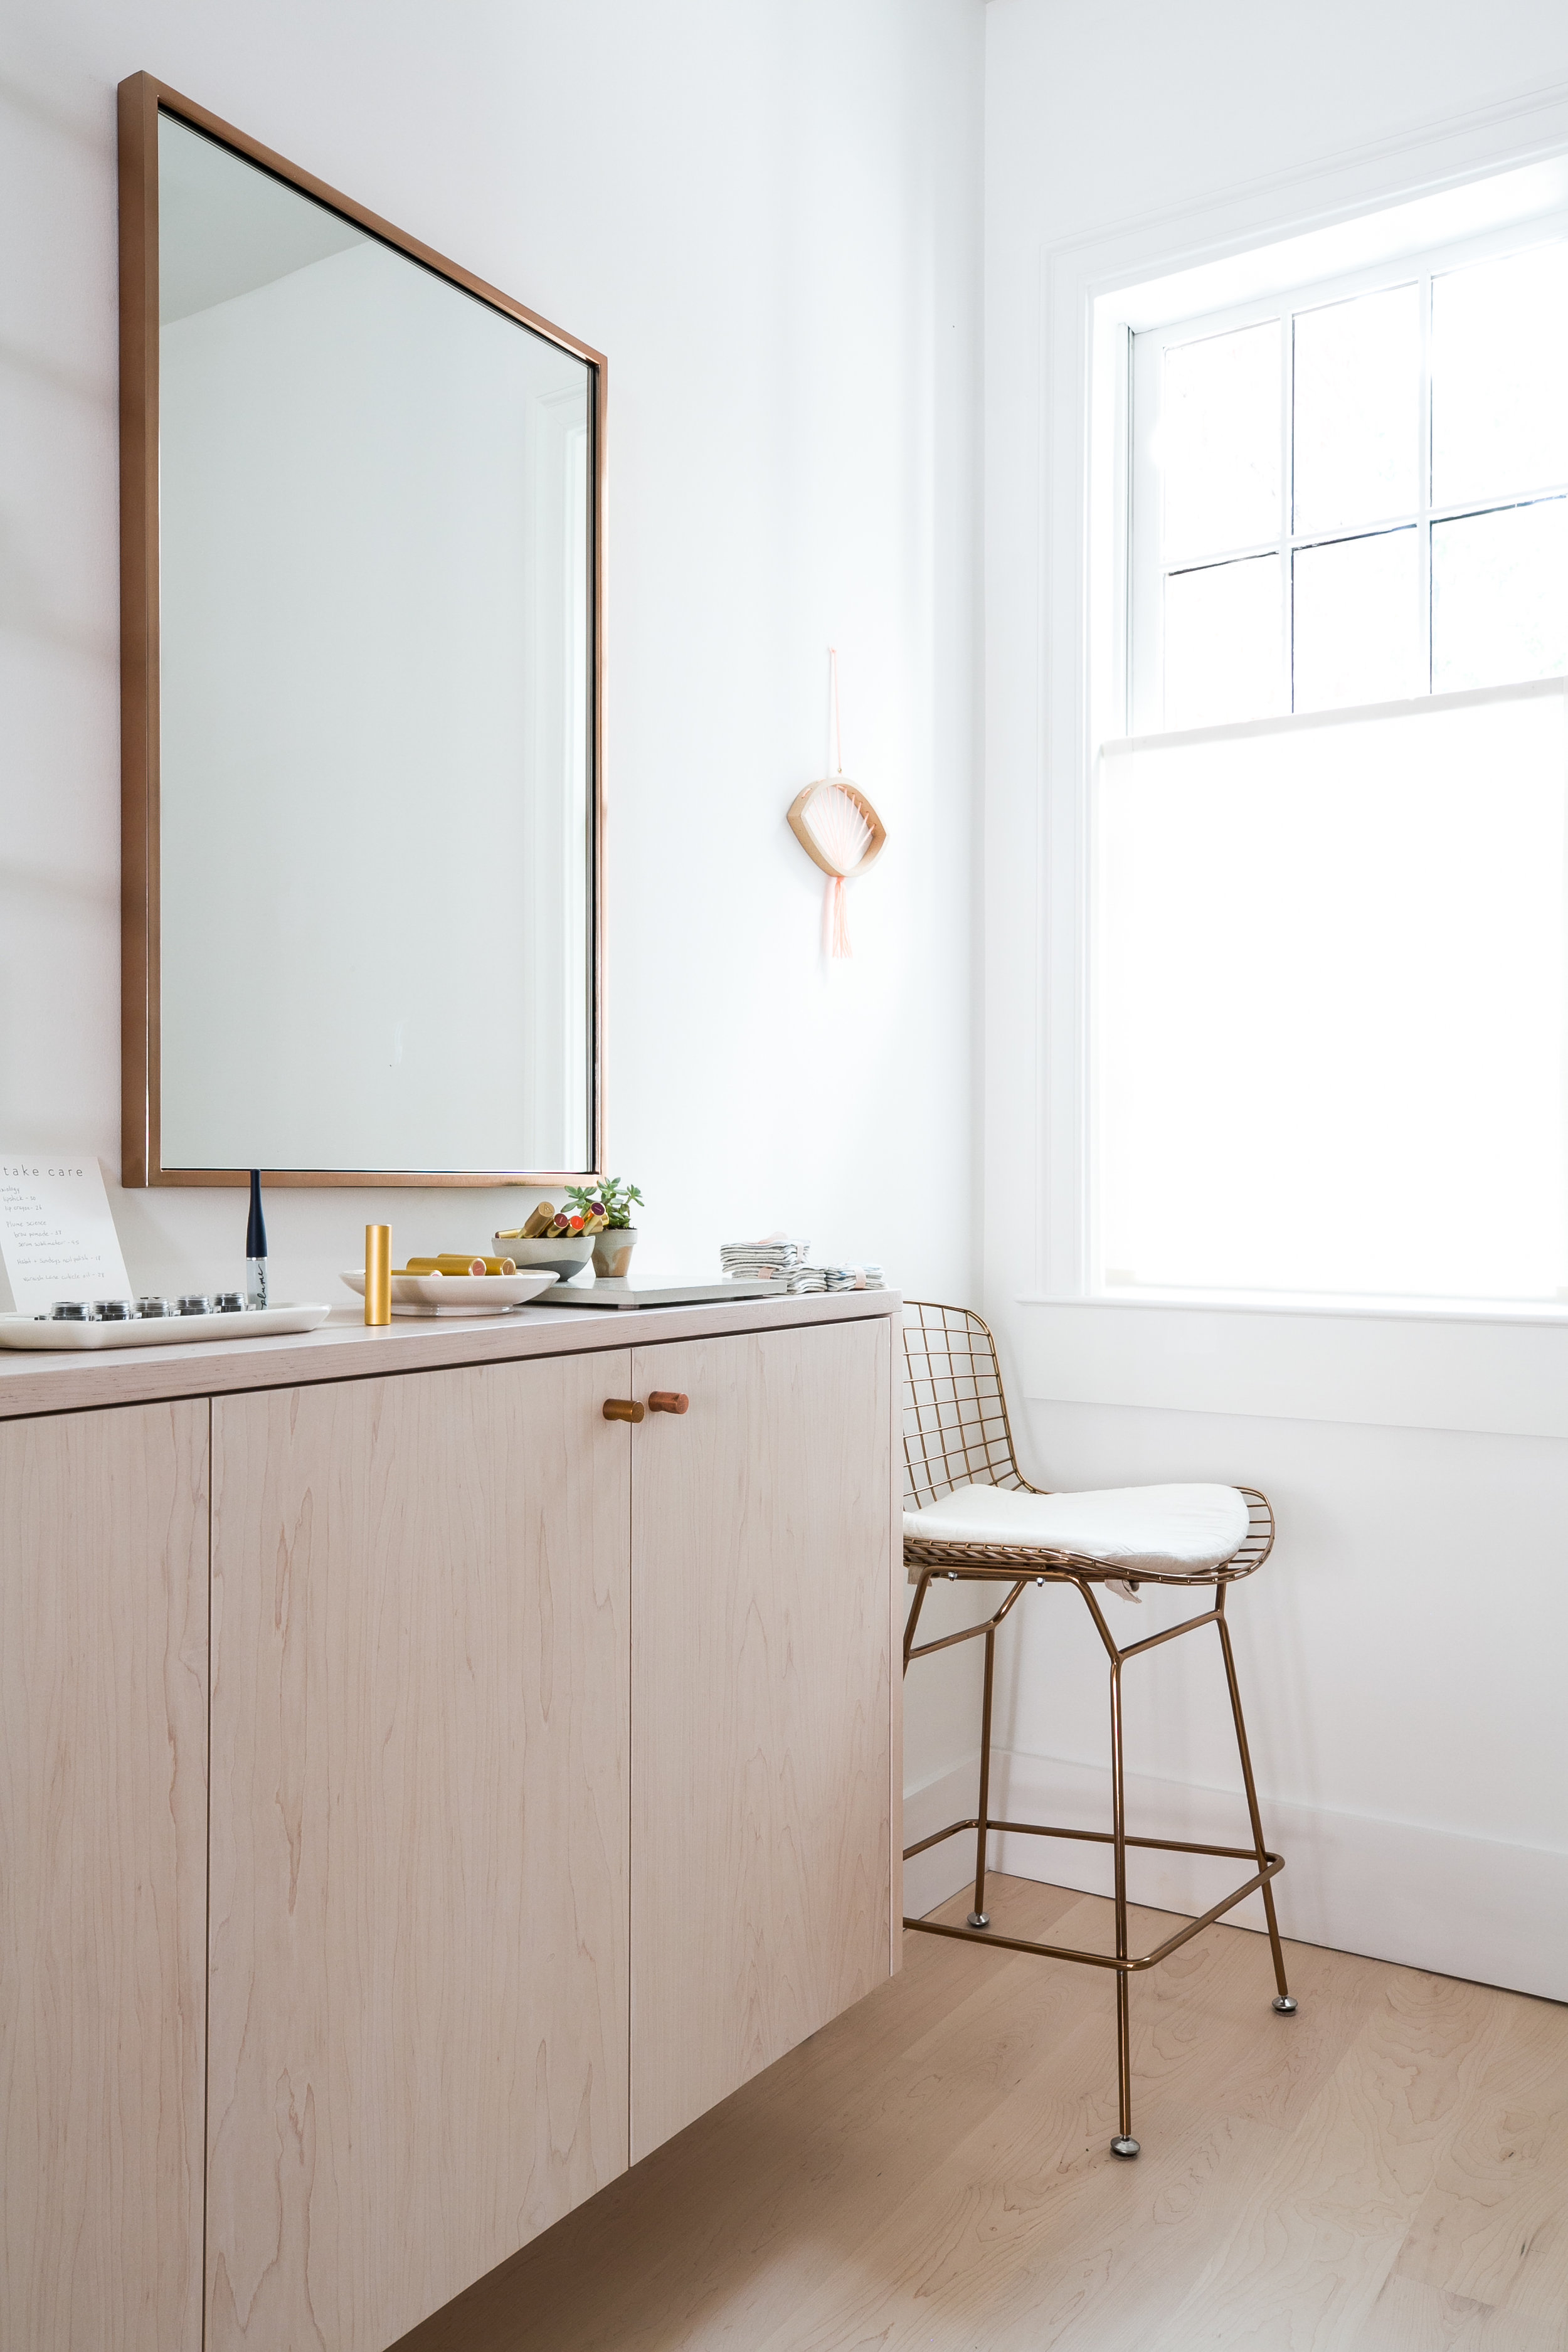 Wall-mount cabinet with adjustable shelves and copper knobs, constructed from birch plywood with whitewash stain and extra matte commercial polyurethane